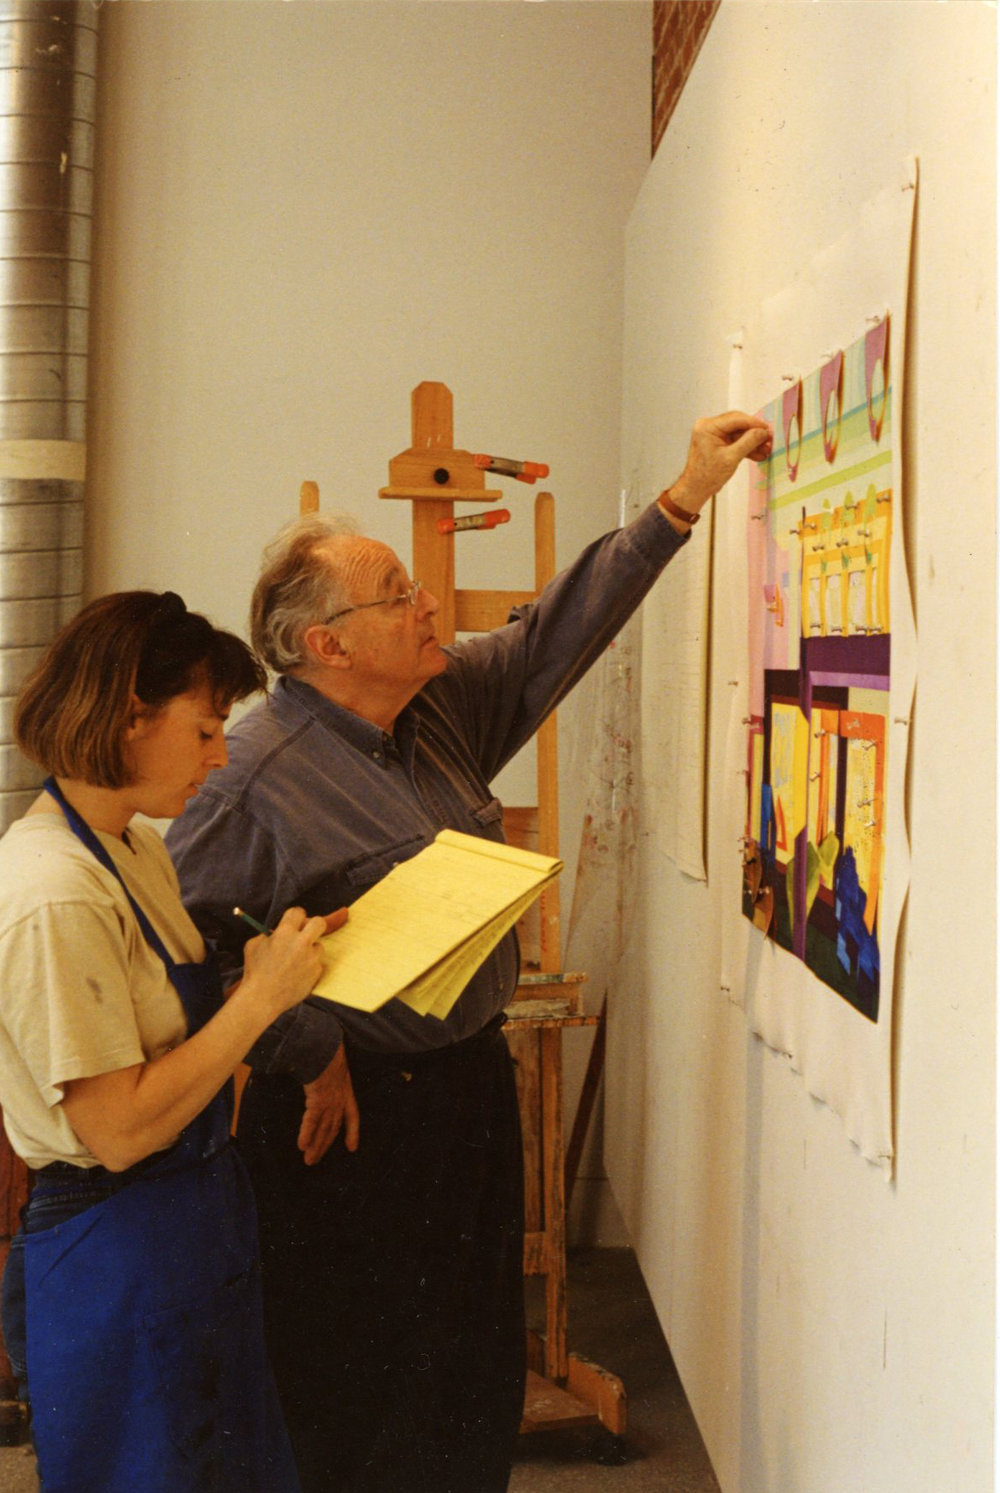 Renee Bott works with Al Held on  Embarcadero,  1994